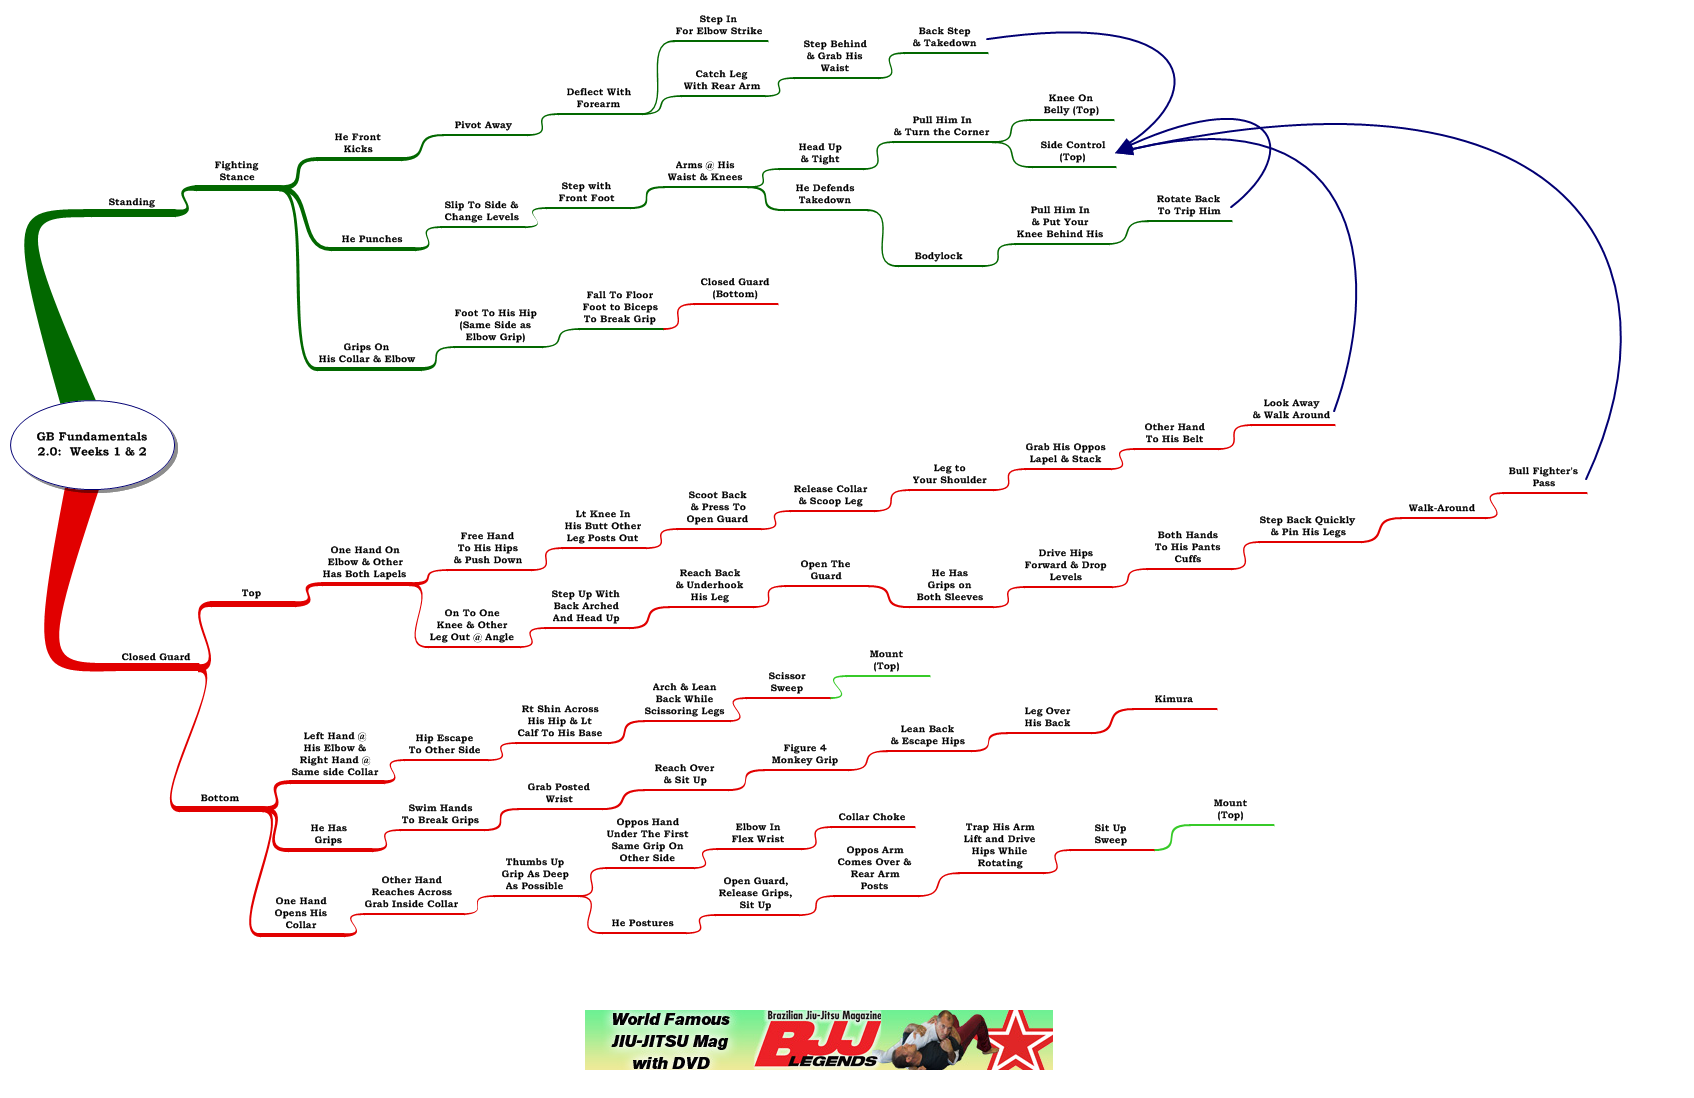 Review/Mindmap: Gracie Barra Fundamentals 2.0 App Weeks 1 thru 4